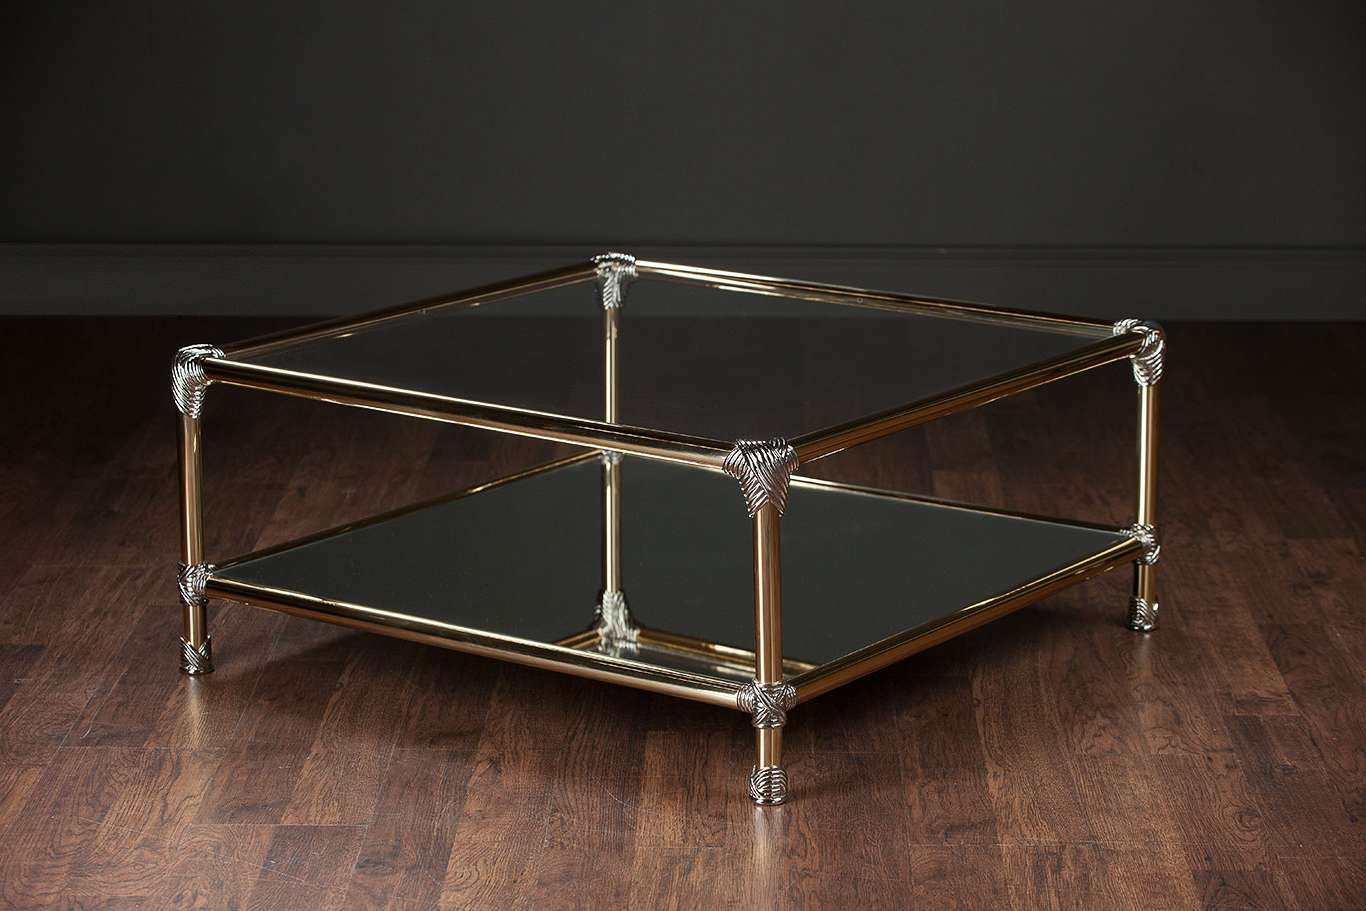 Vintage Brass And Chrome Coffee Table – Mecox Gardens Regarding Recent Vintage Mirror Coffee Tables (View 20 of 20)